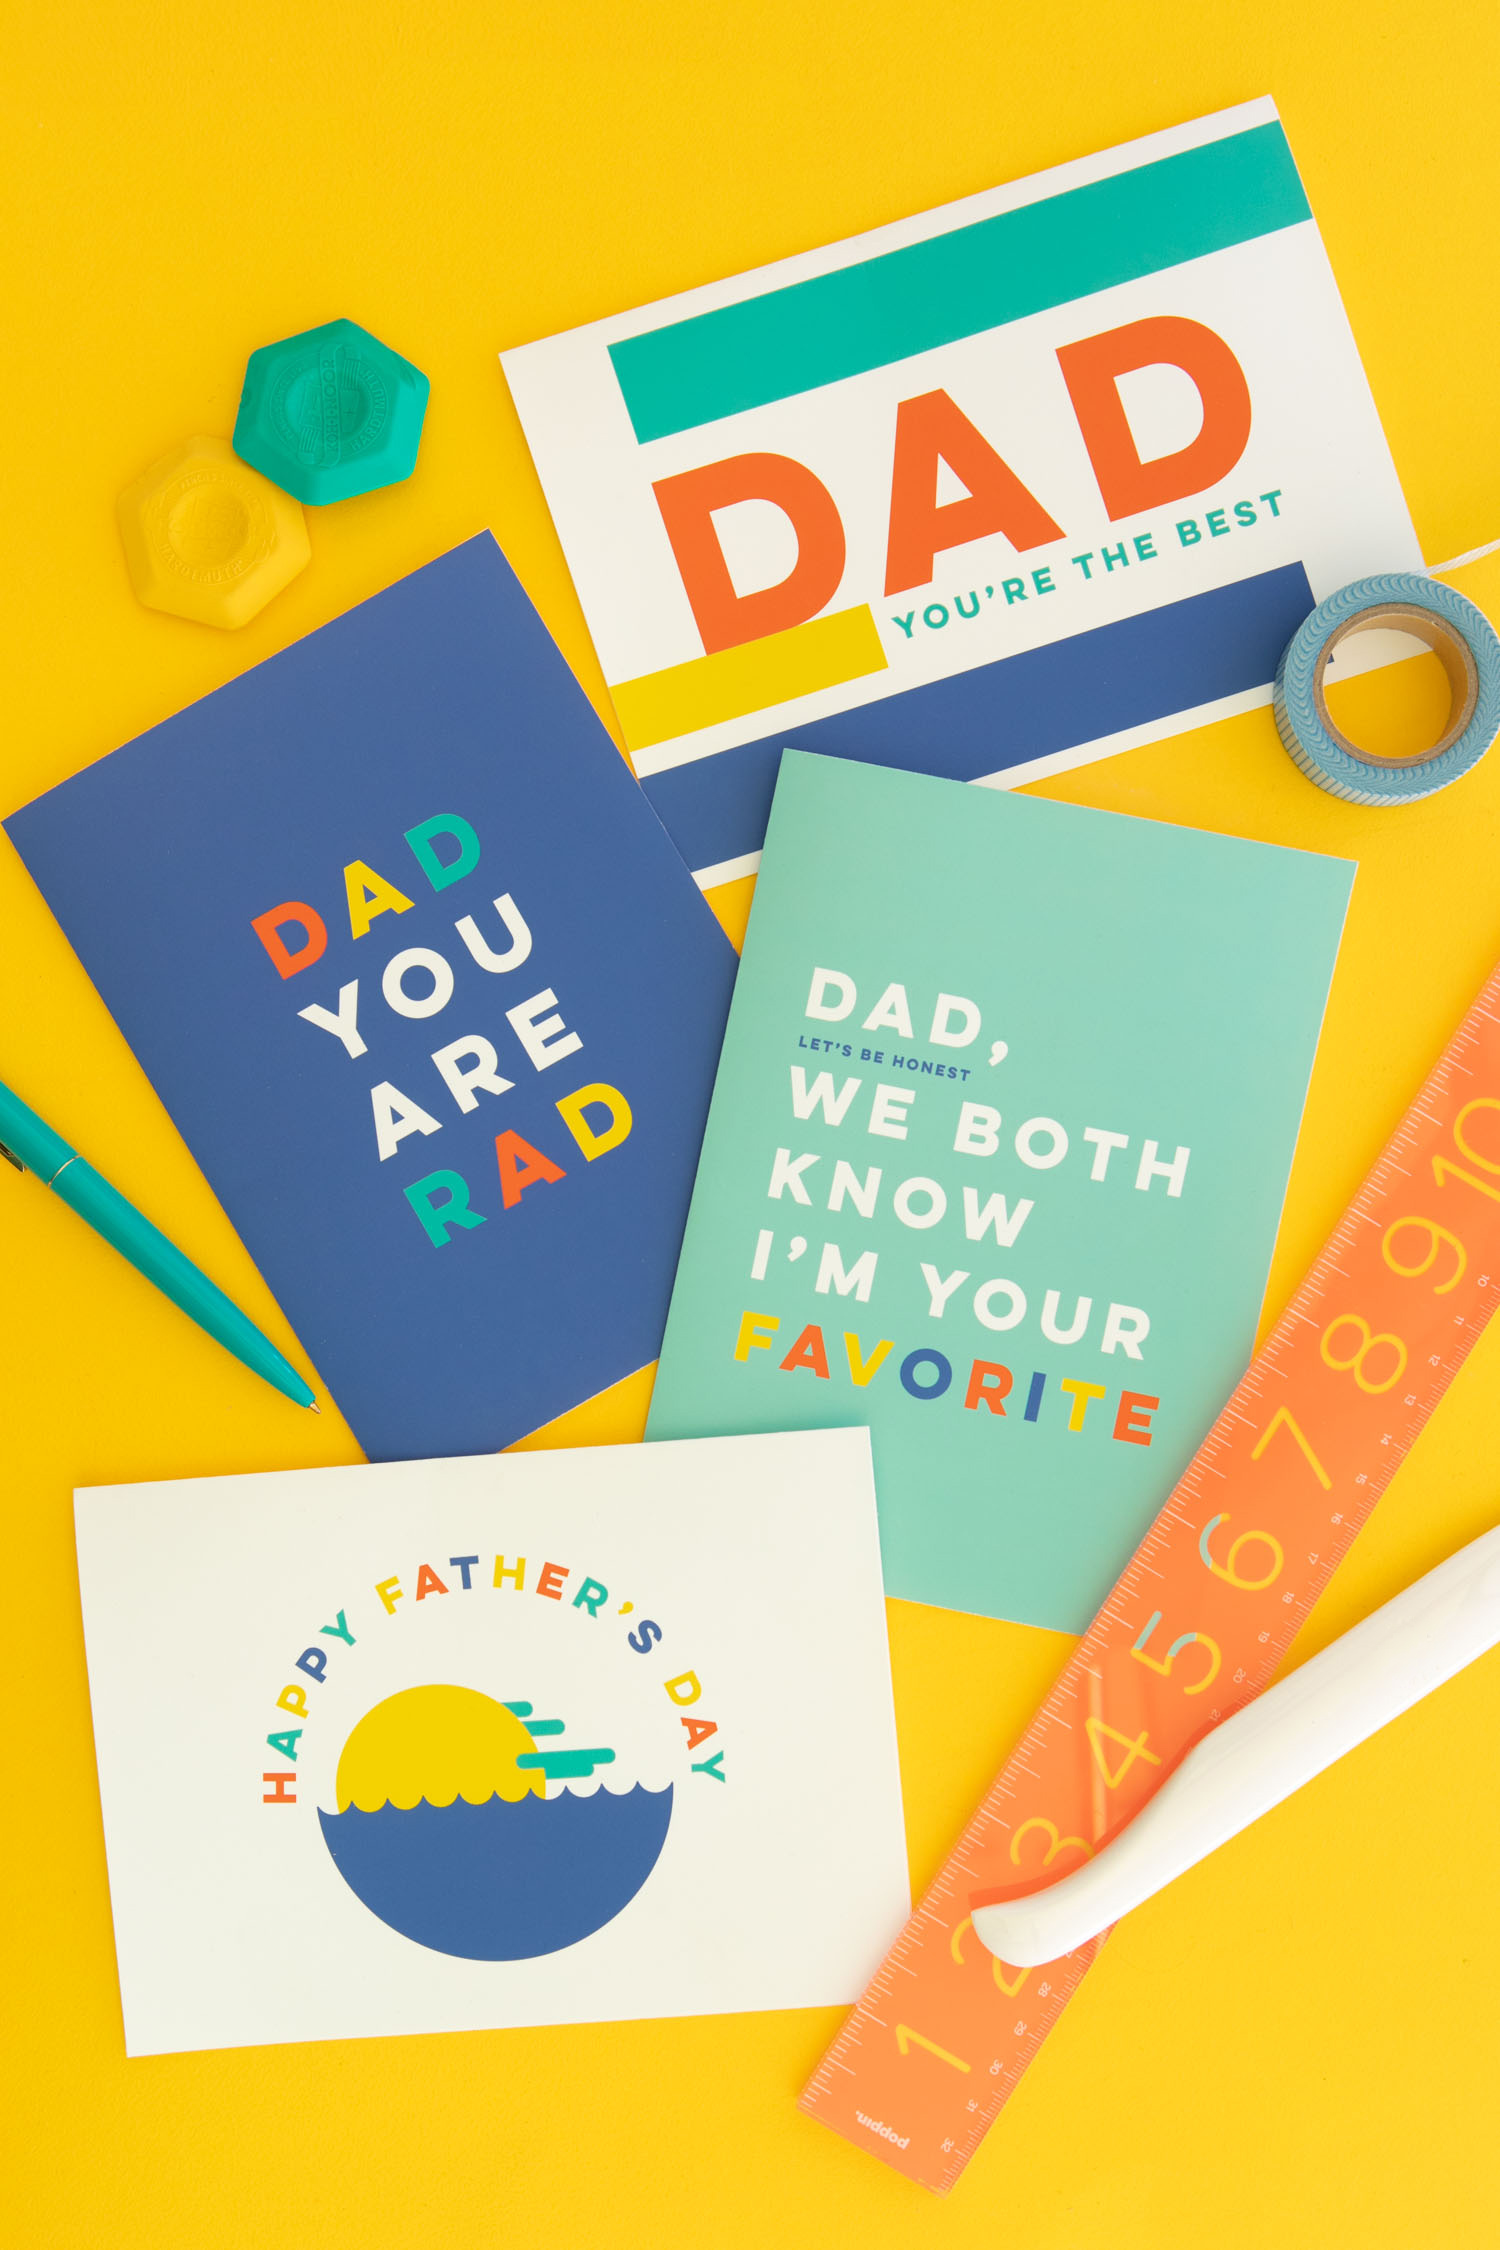 image about Free Printable Funny Father's Day Cards named Free of charge Printable Revolutionary Fathers Working day Playing cards - Sarah Hearts